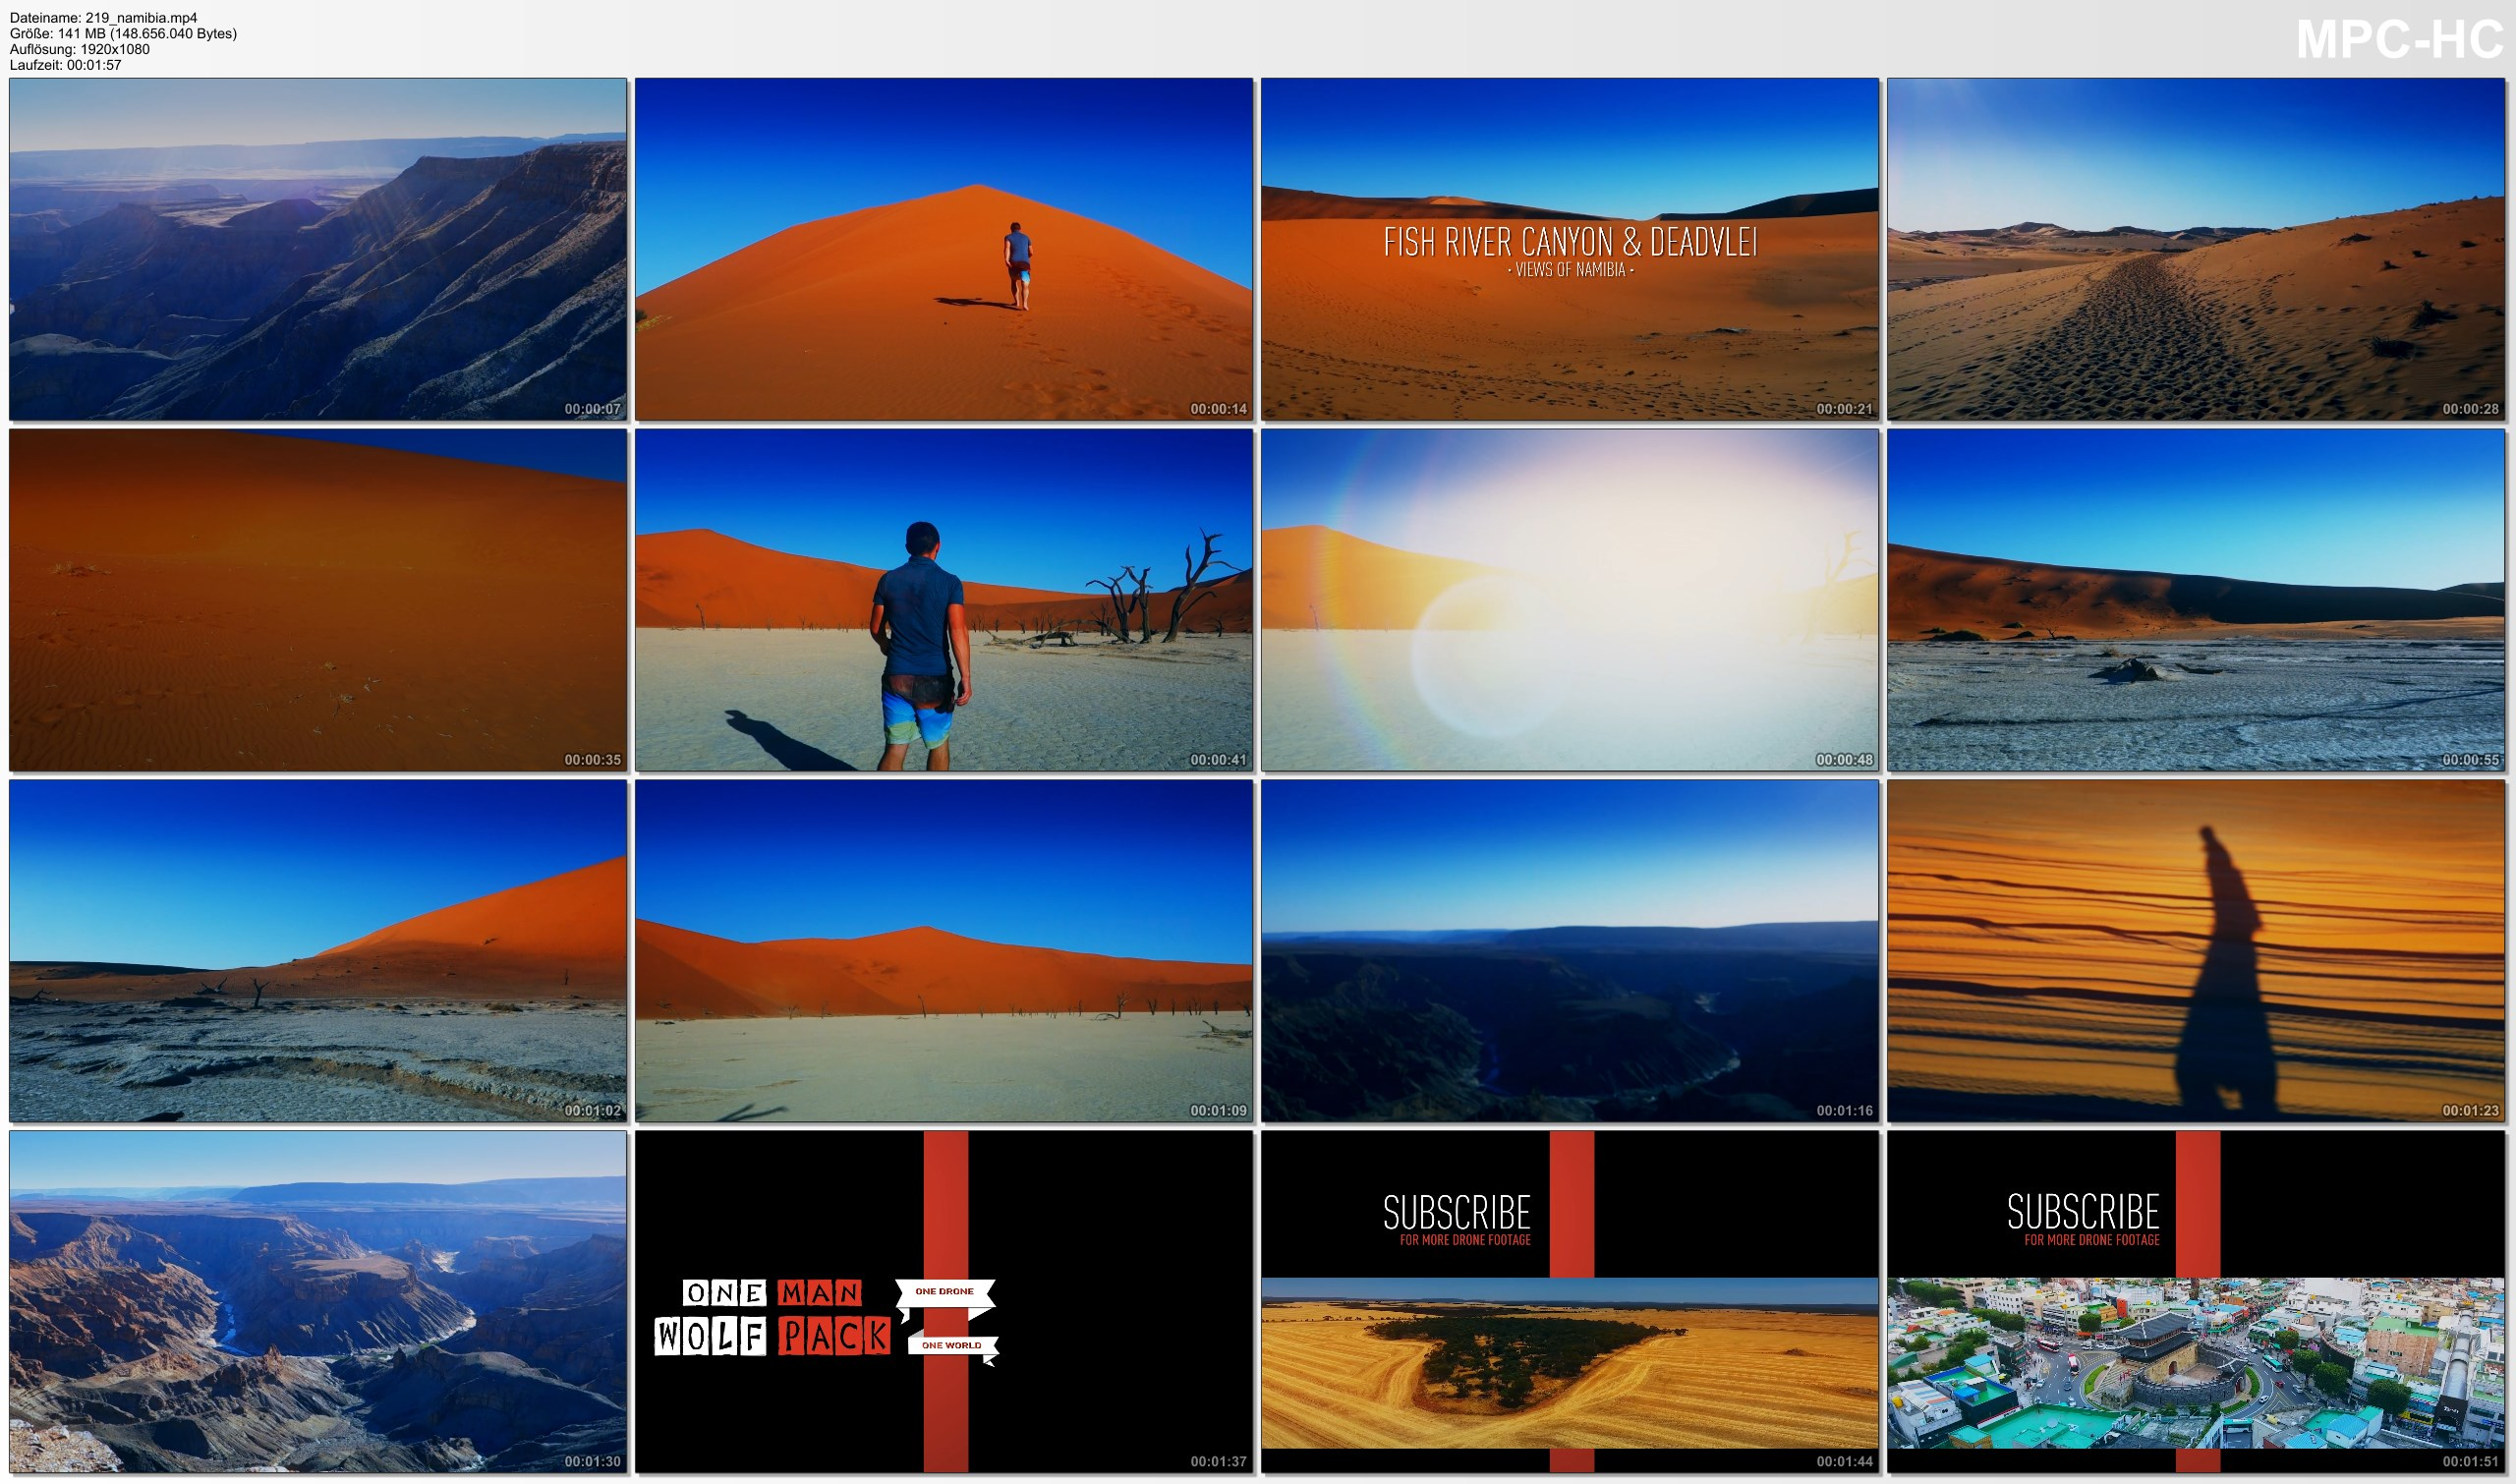 Pictures from Video 【1080p】Footage | Fish River Canyon & Deadvlei 2019 ..:: NAMIBIA | Sossusvlei | Namib Desert *TRAVEL*